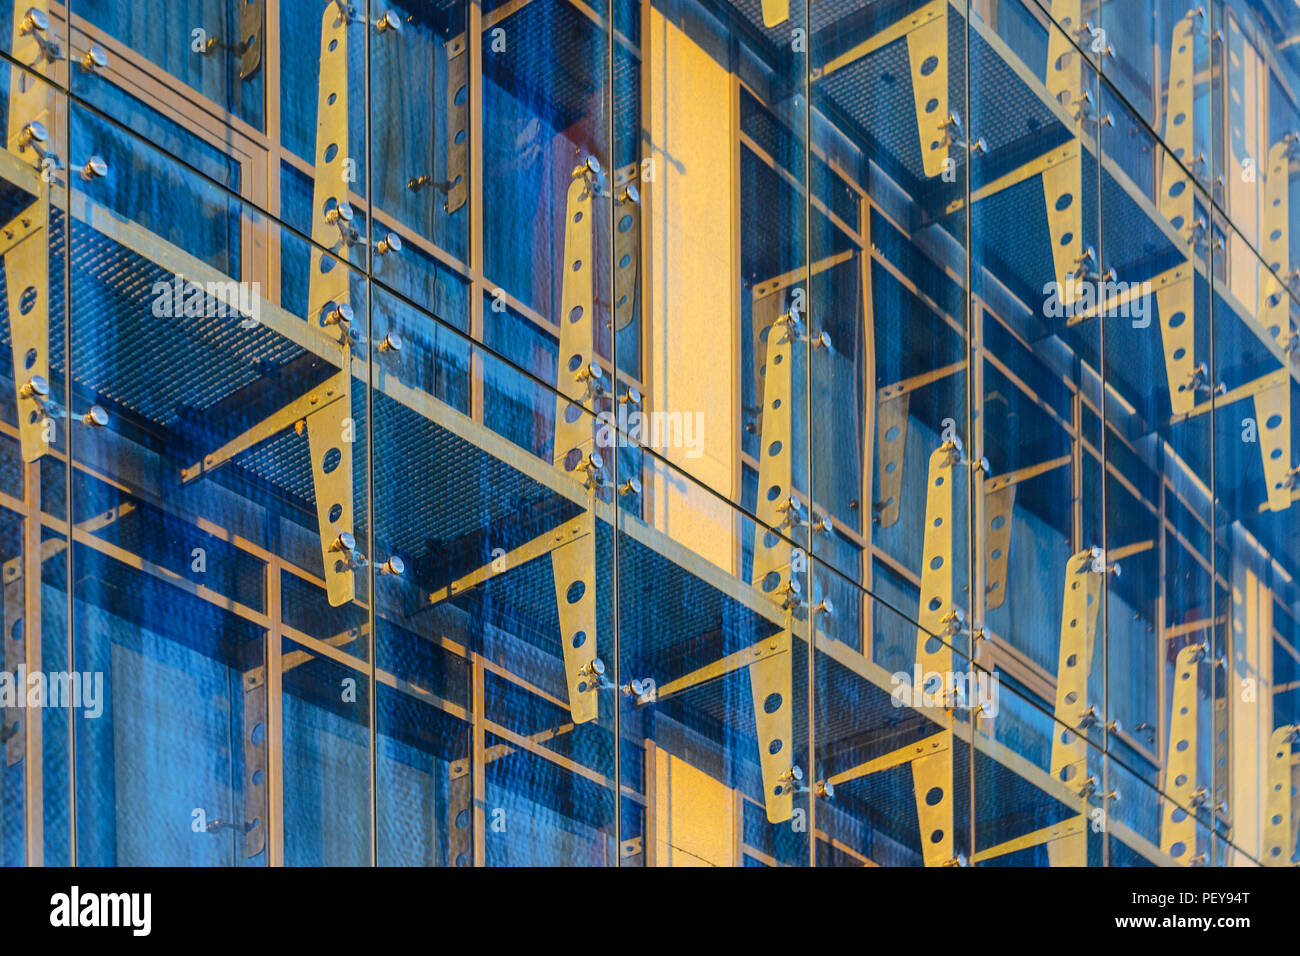 Glass Curtain Facade Wall. Fasteners Elements of Spider Glass System. Facade Detail. Architecture Abstract Background. Stock Photo